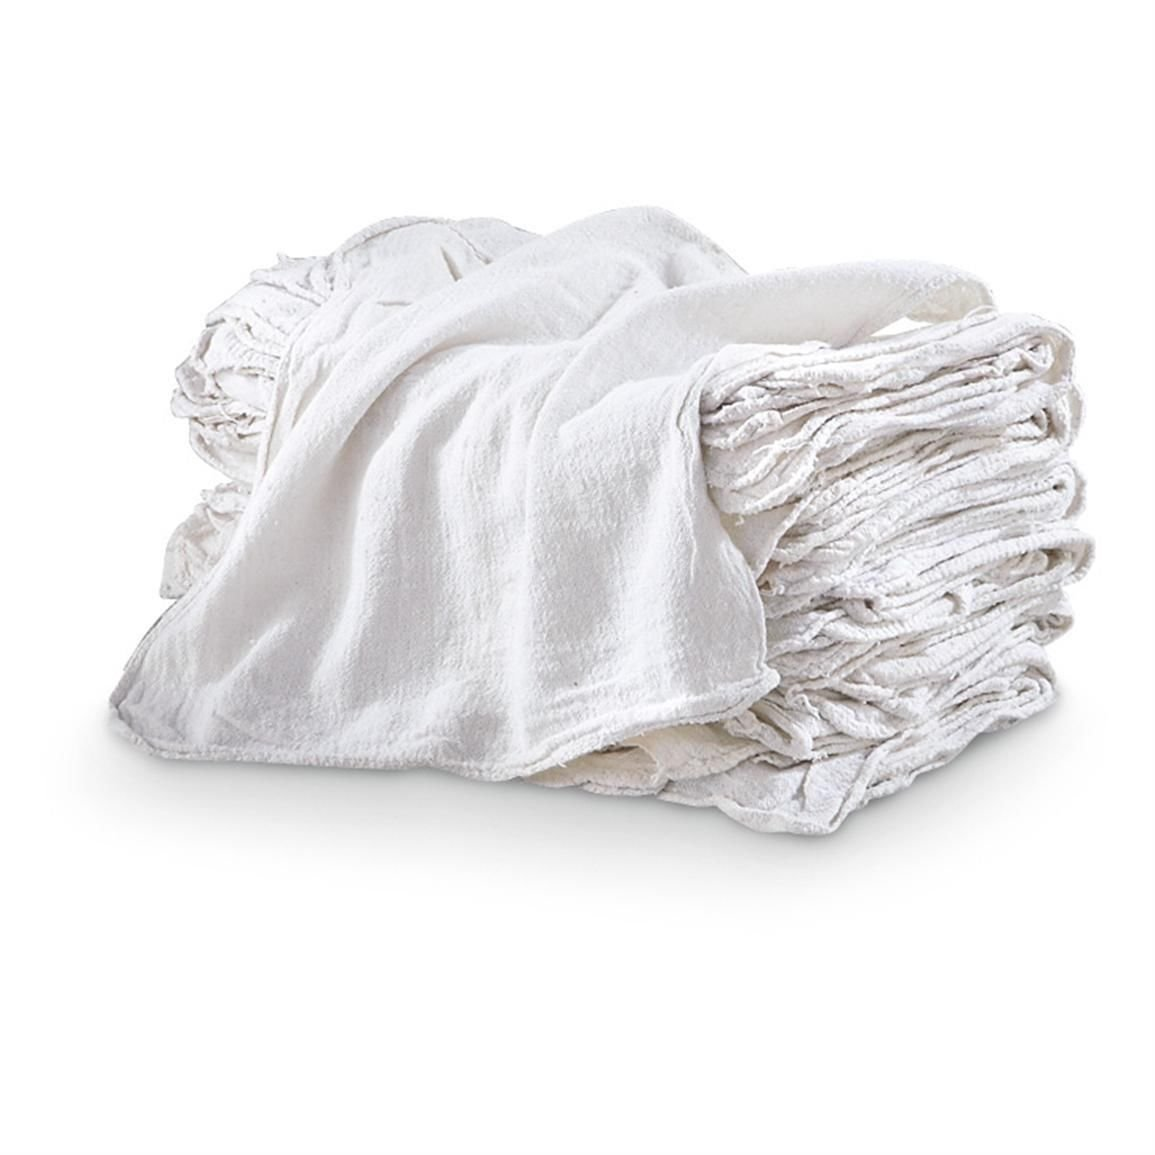 Auto Shop & Wash Towels - Pack of 50-100% PURE WHITE COTTON - LARGE 14'' x 14'' Commercial Grade - Can be Used for Drying, Cleaning, Washing, and More! Highly Absorbent